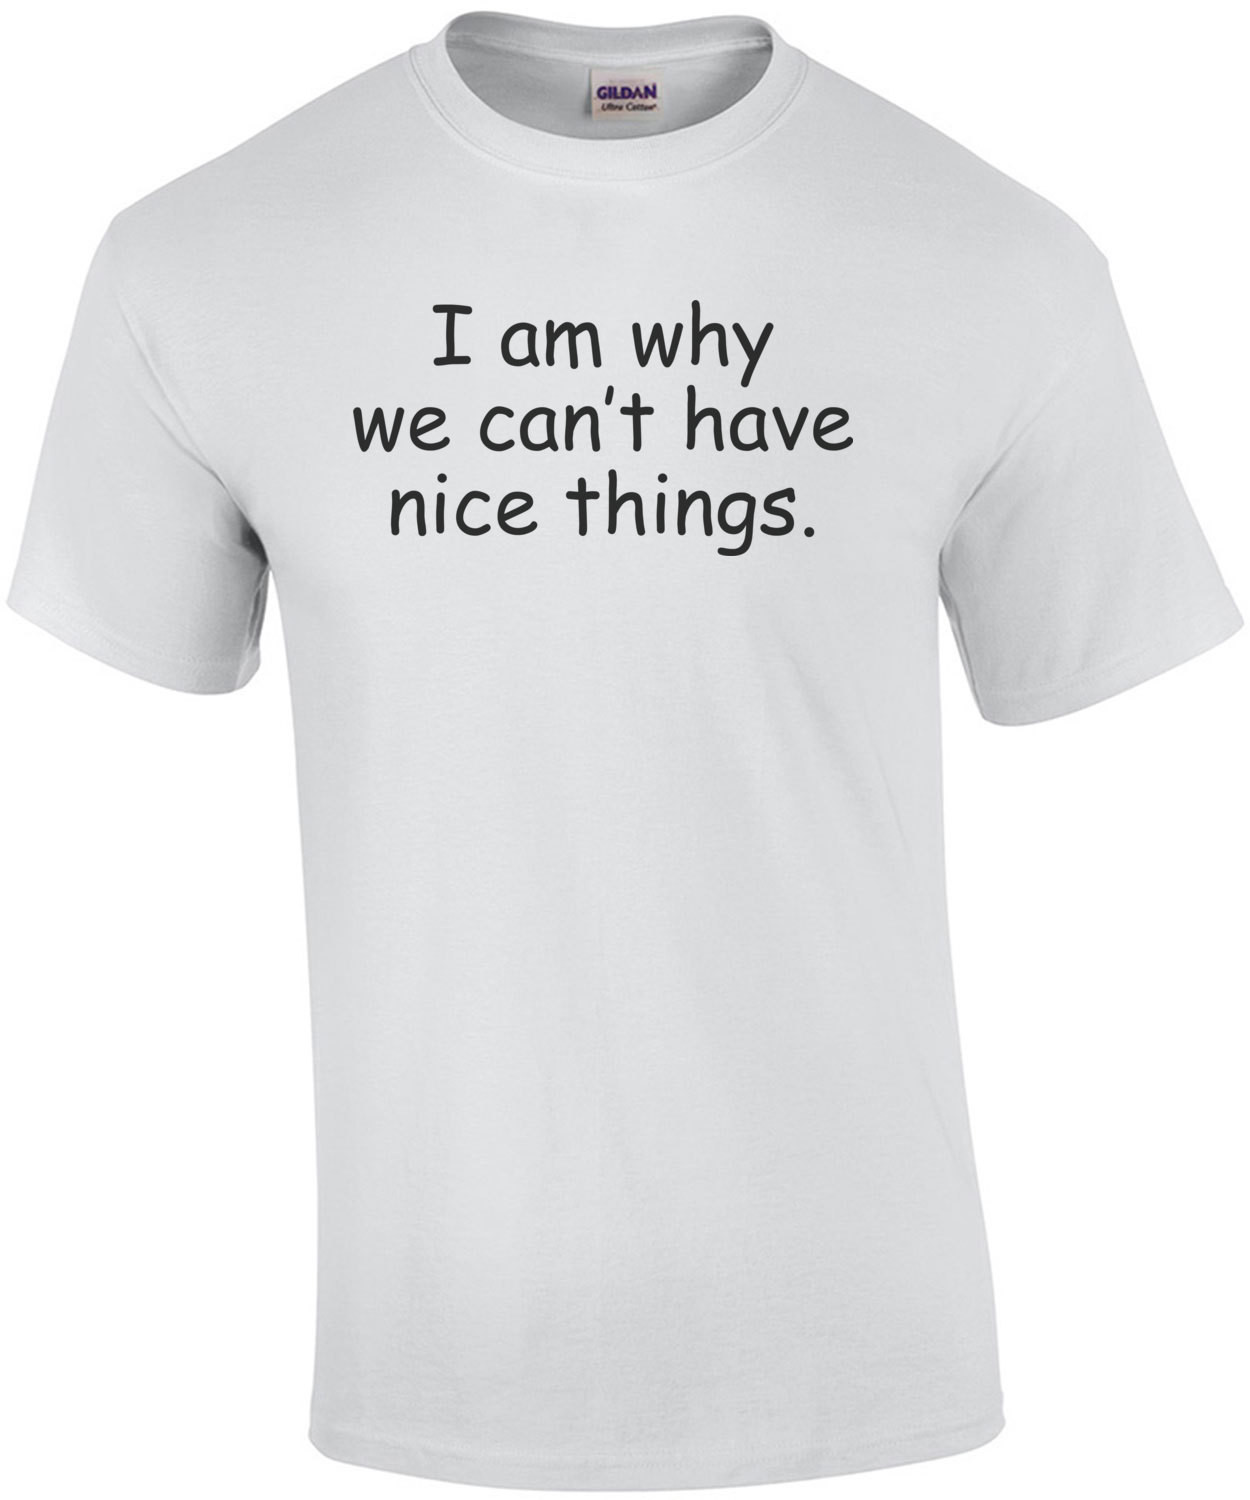 I Am Why We Can't Have Nice Things. - Kid's Shirt